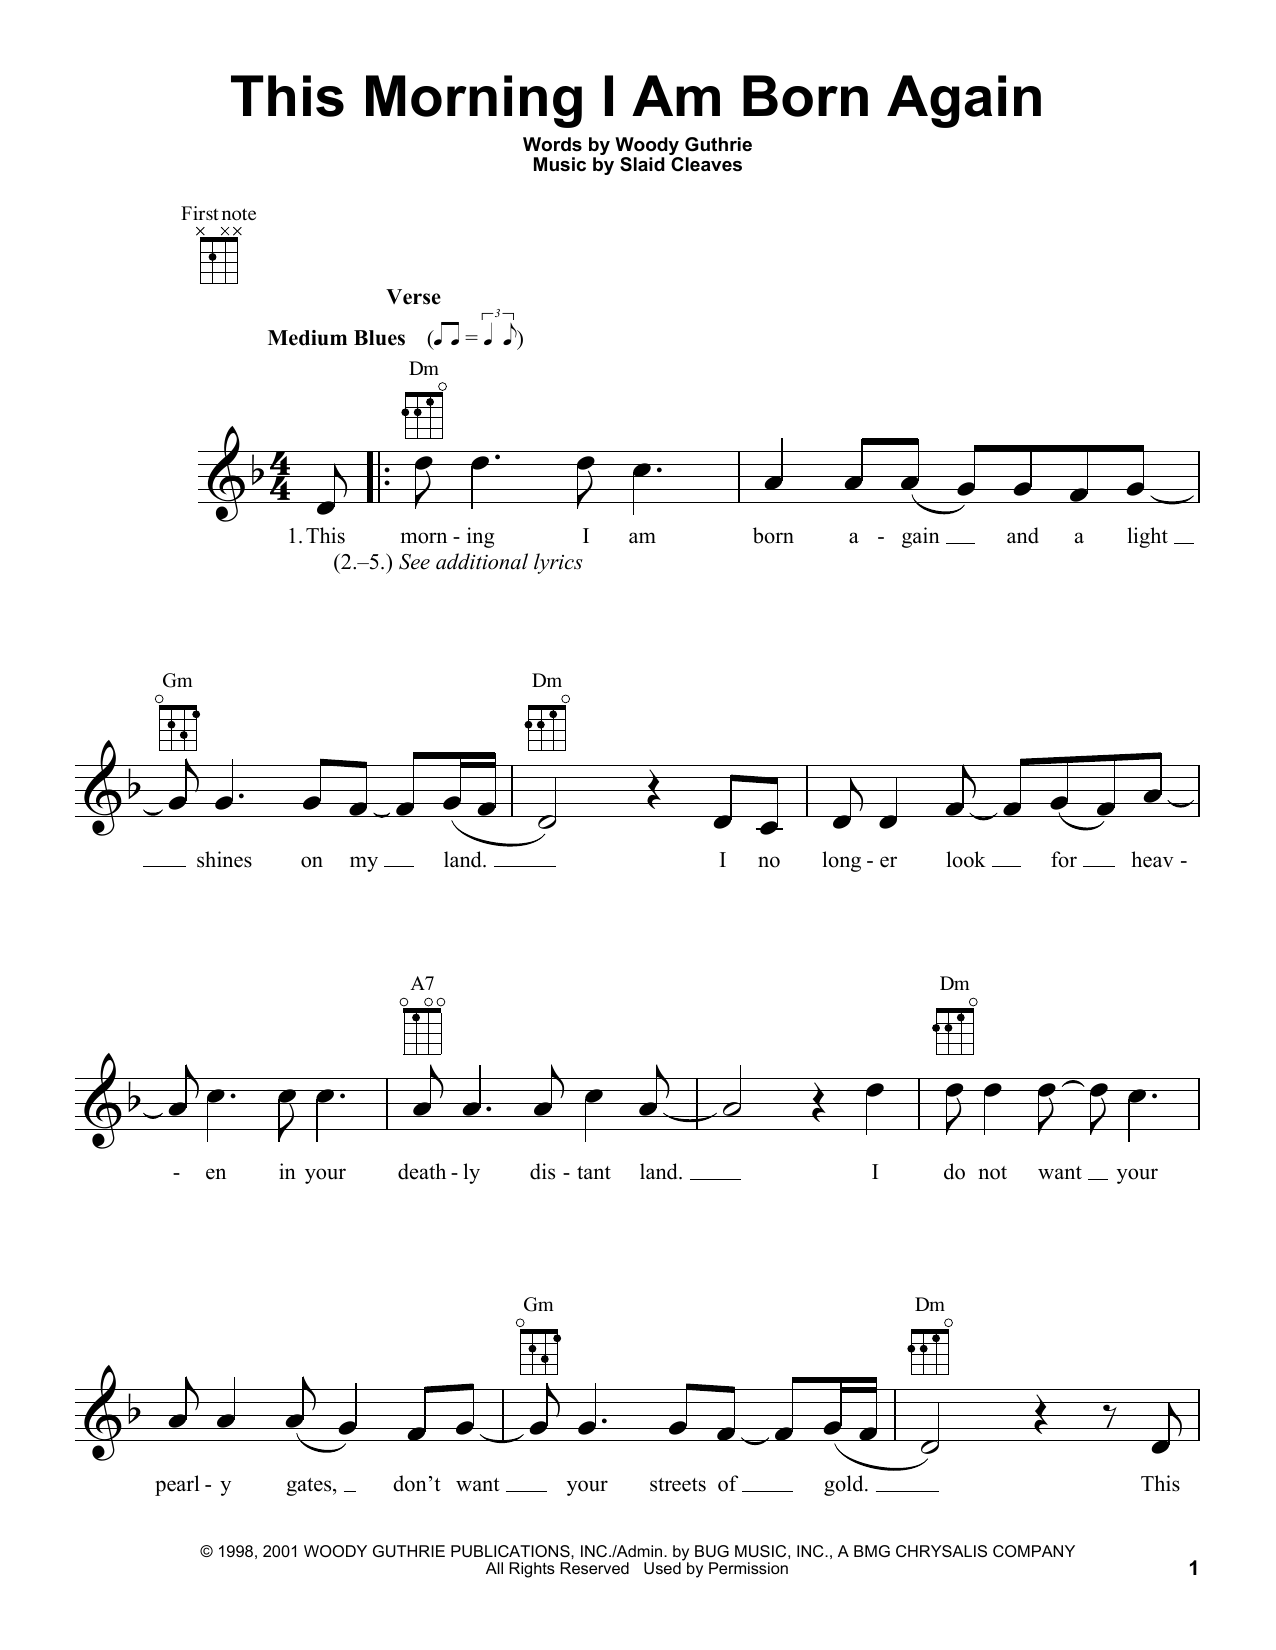 Woody Guthrie 'This Morning I Am Born Again' Sheet Music Notes, Chords |  Download Printable Ukulele - SKU: 155627